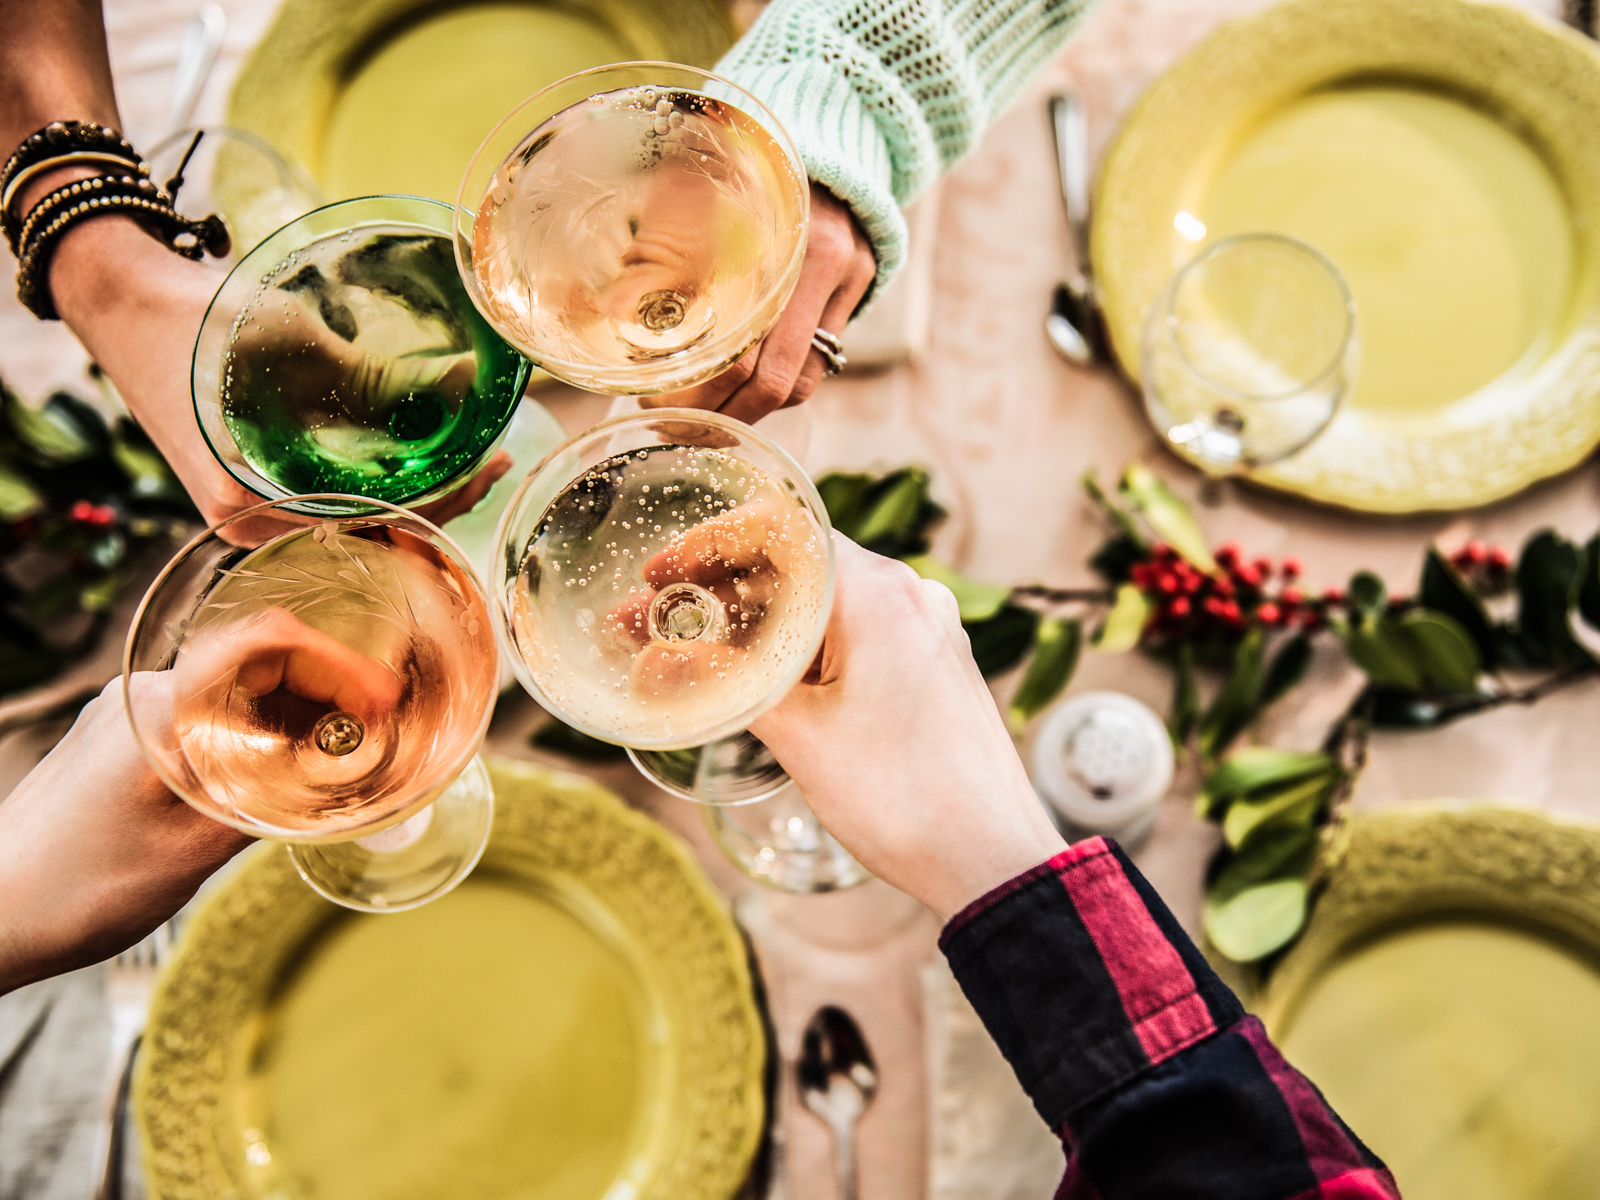 10 Tips for a Safe and Successful Company Holiday Party